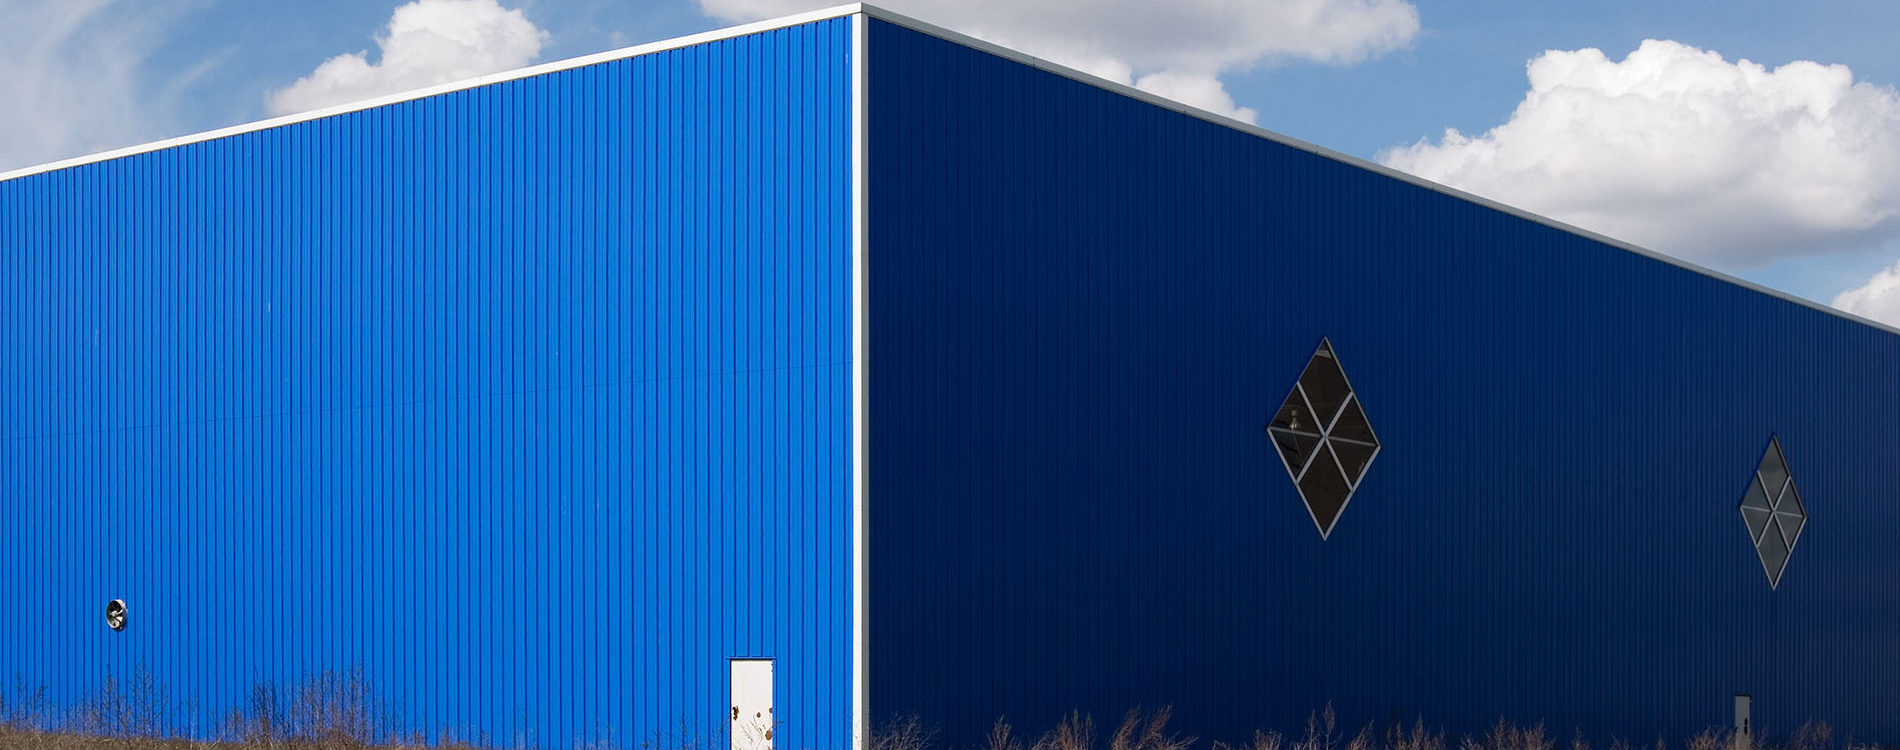 http://www.droitsteelbuildings.com/pre-engineered-buildings/